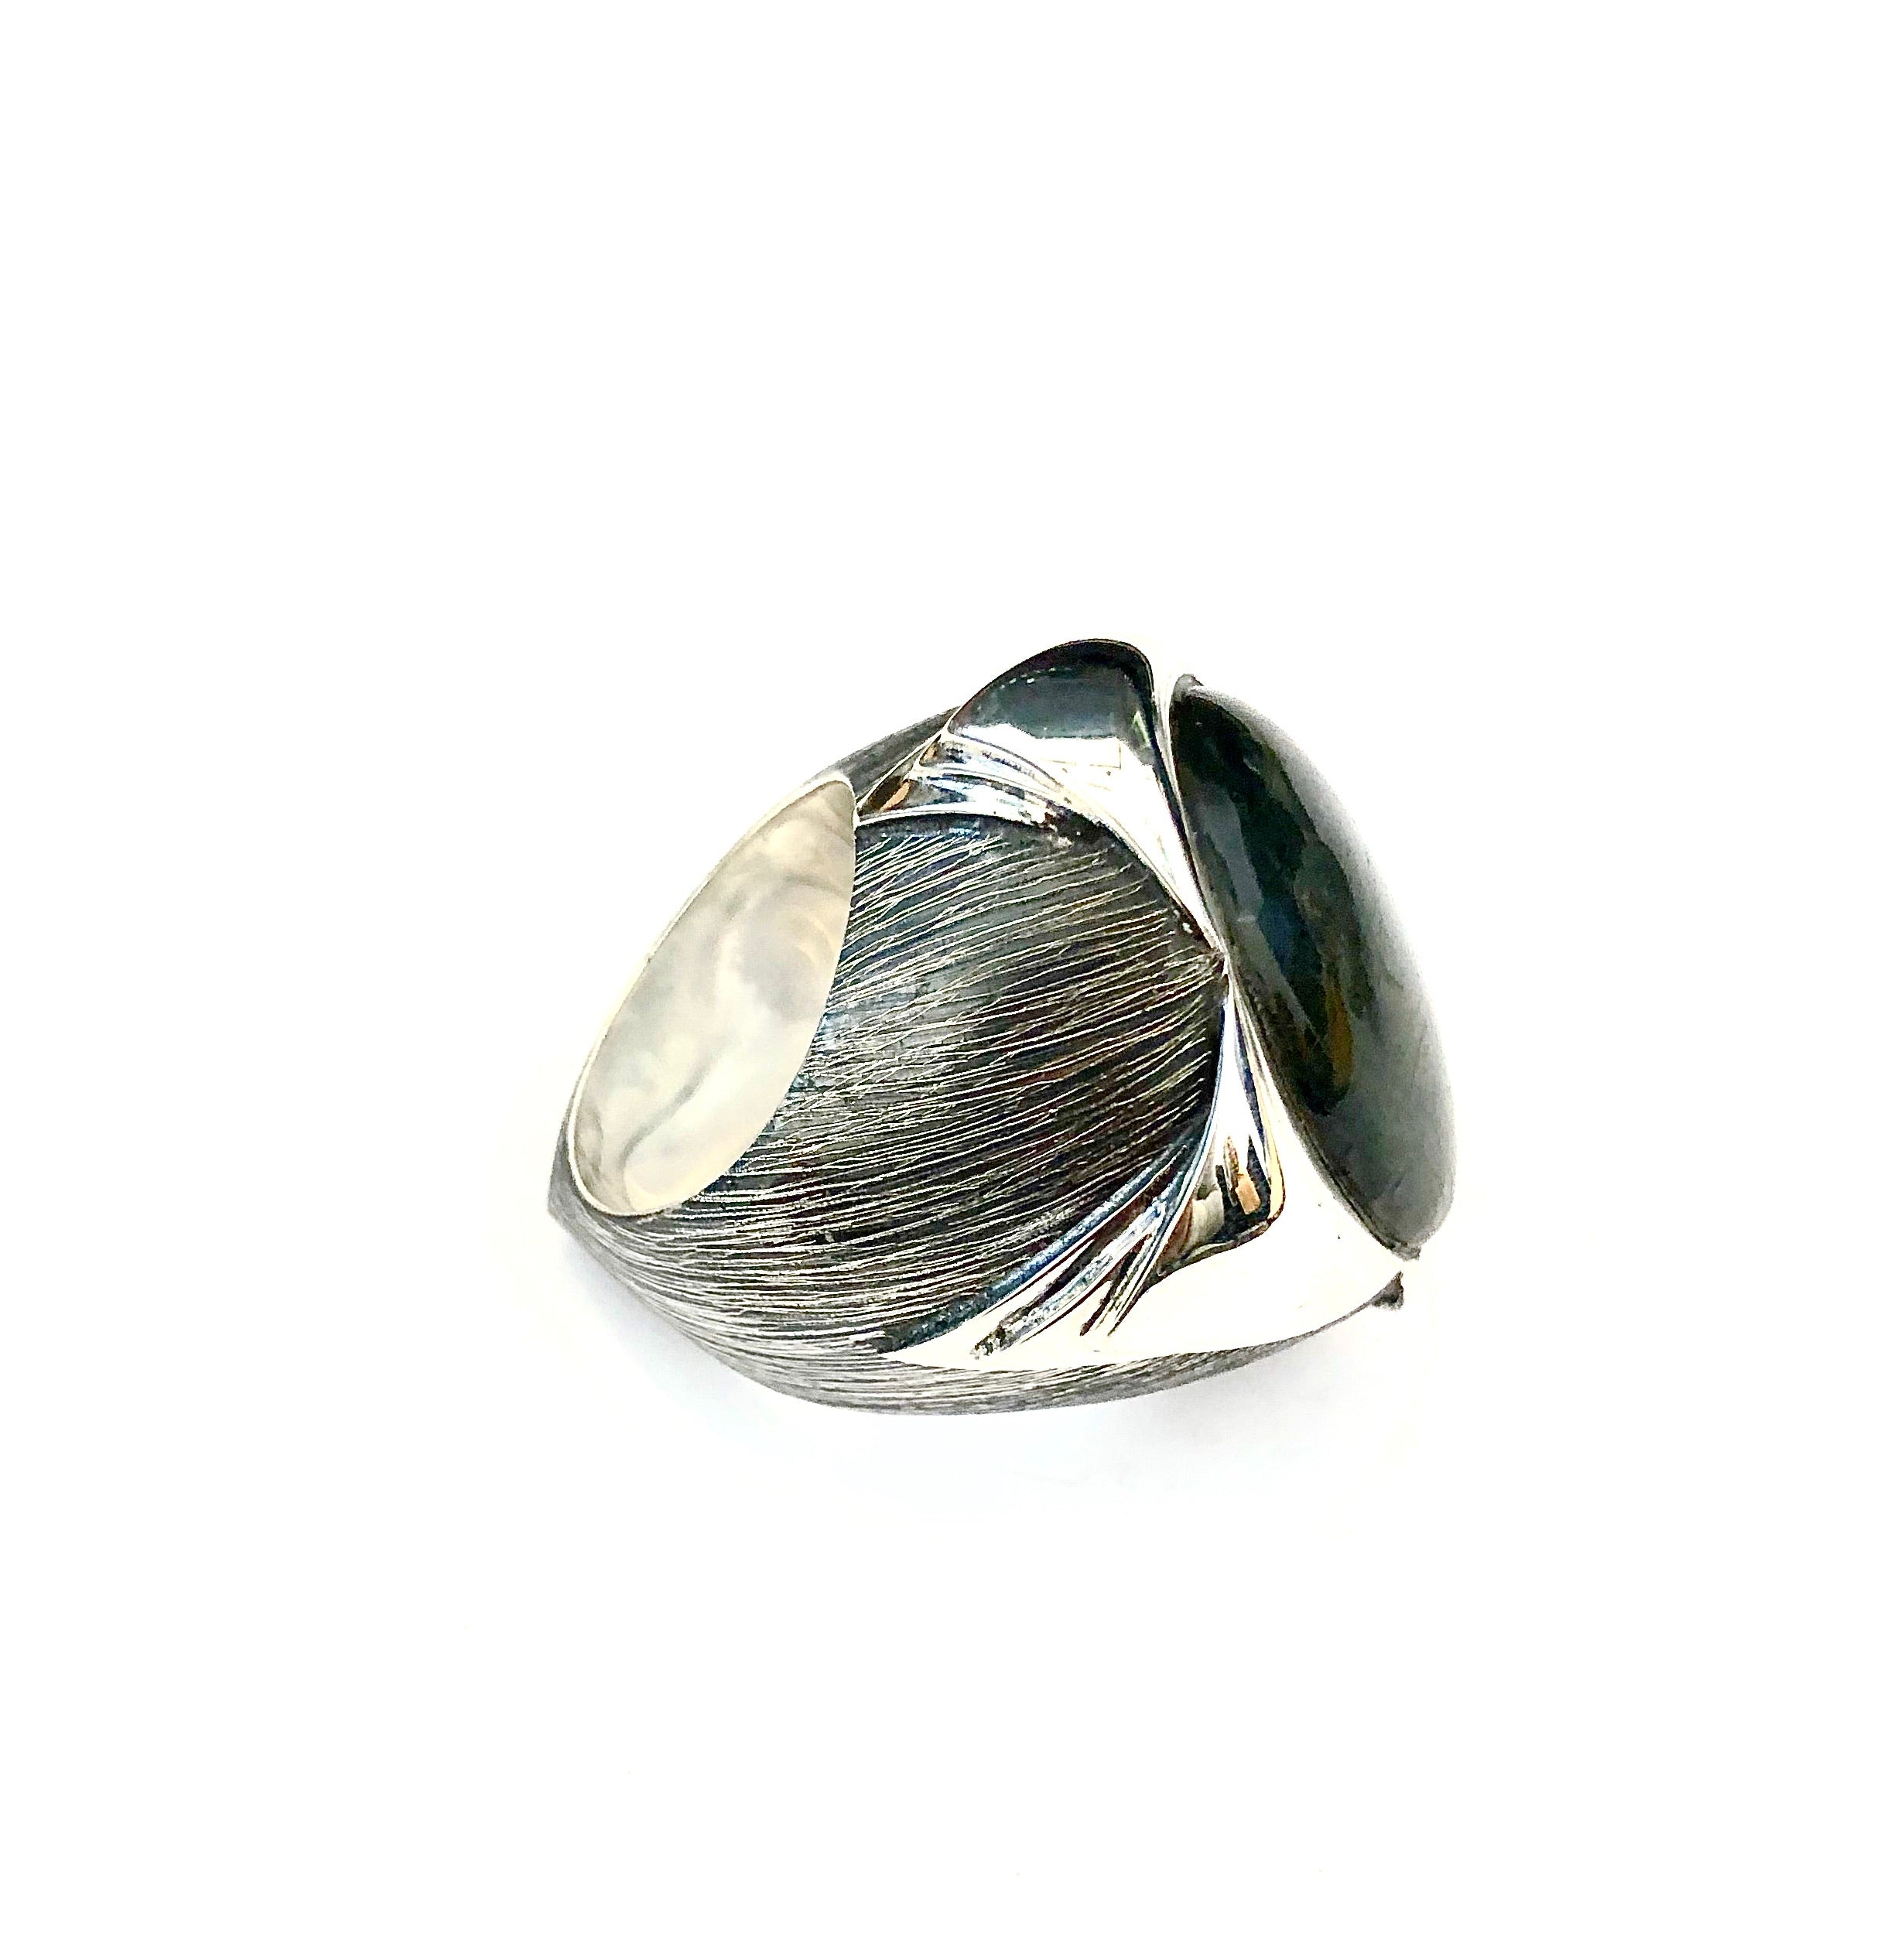 Serendipity Labradorite Ring with Polished Pedals and Etched Texture in Sterling Silver